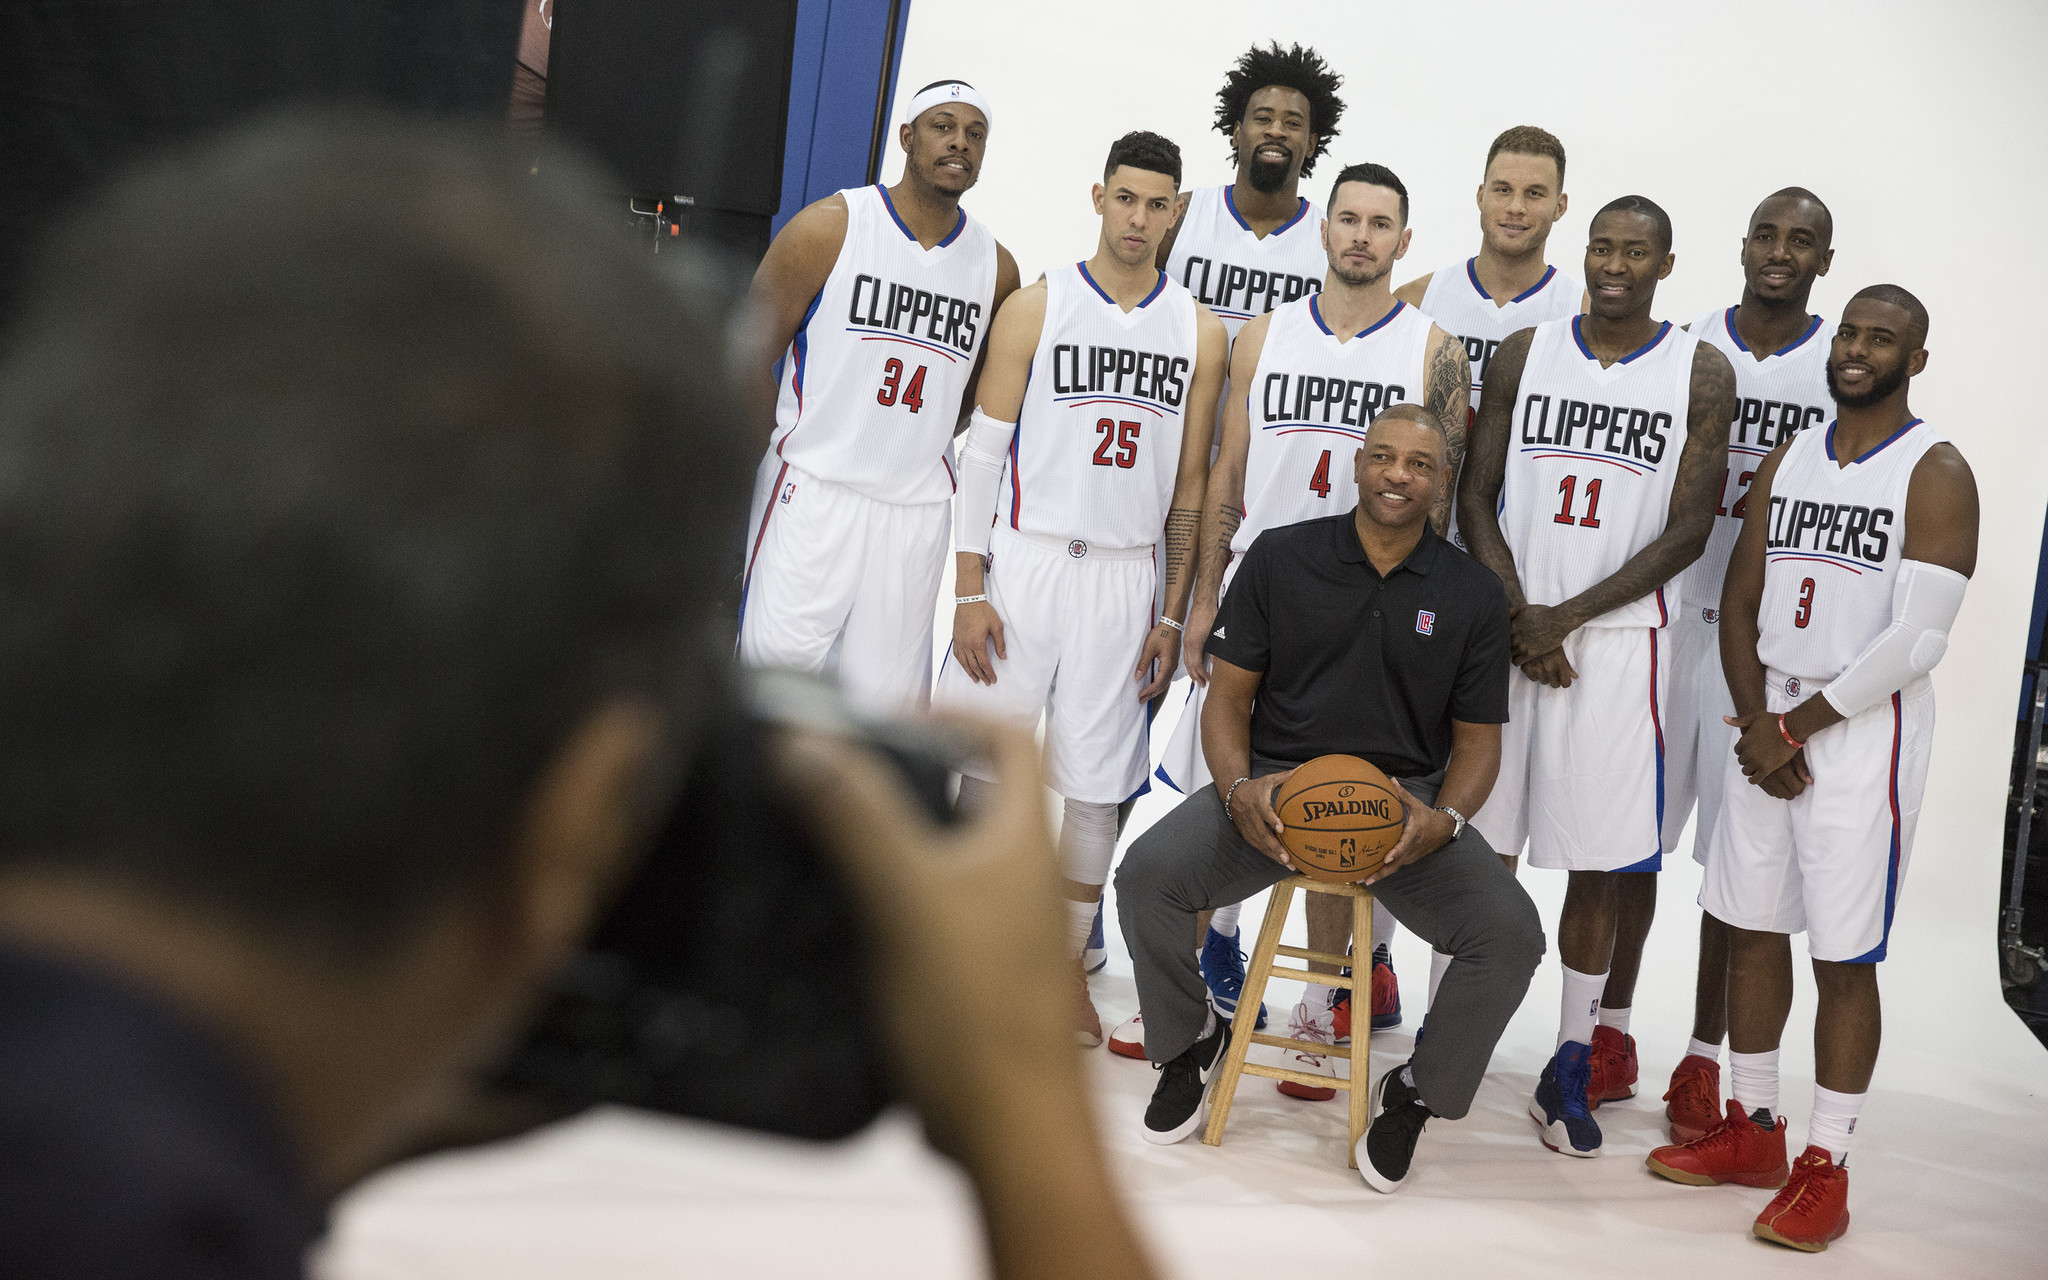 La-sp-clippers-media-day-20160926-snap